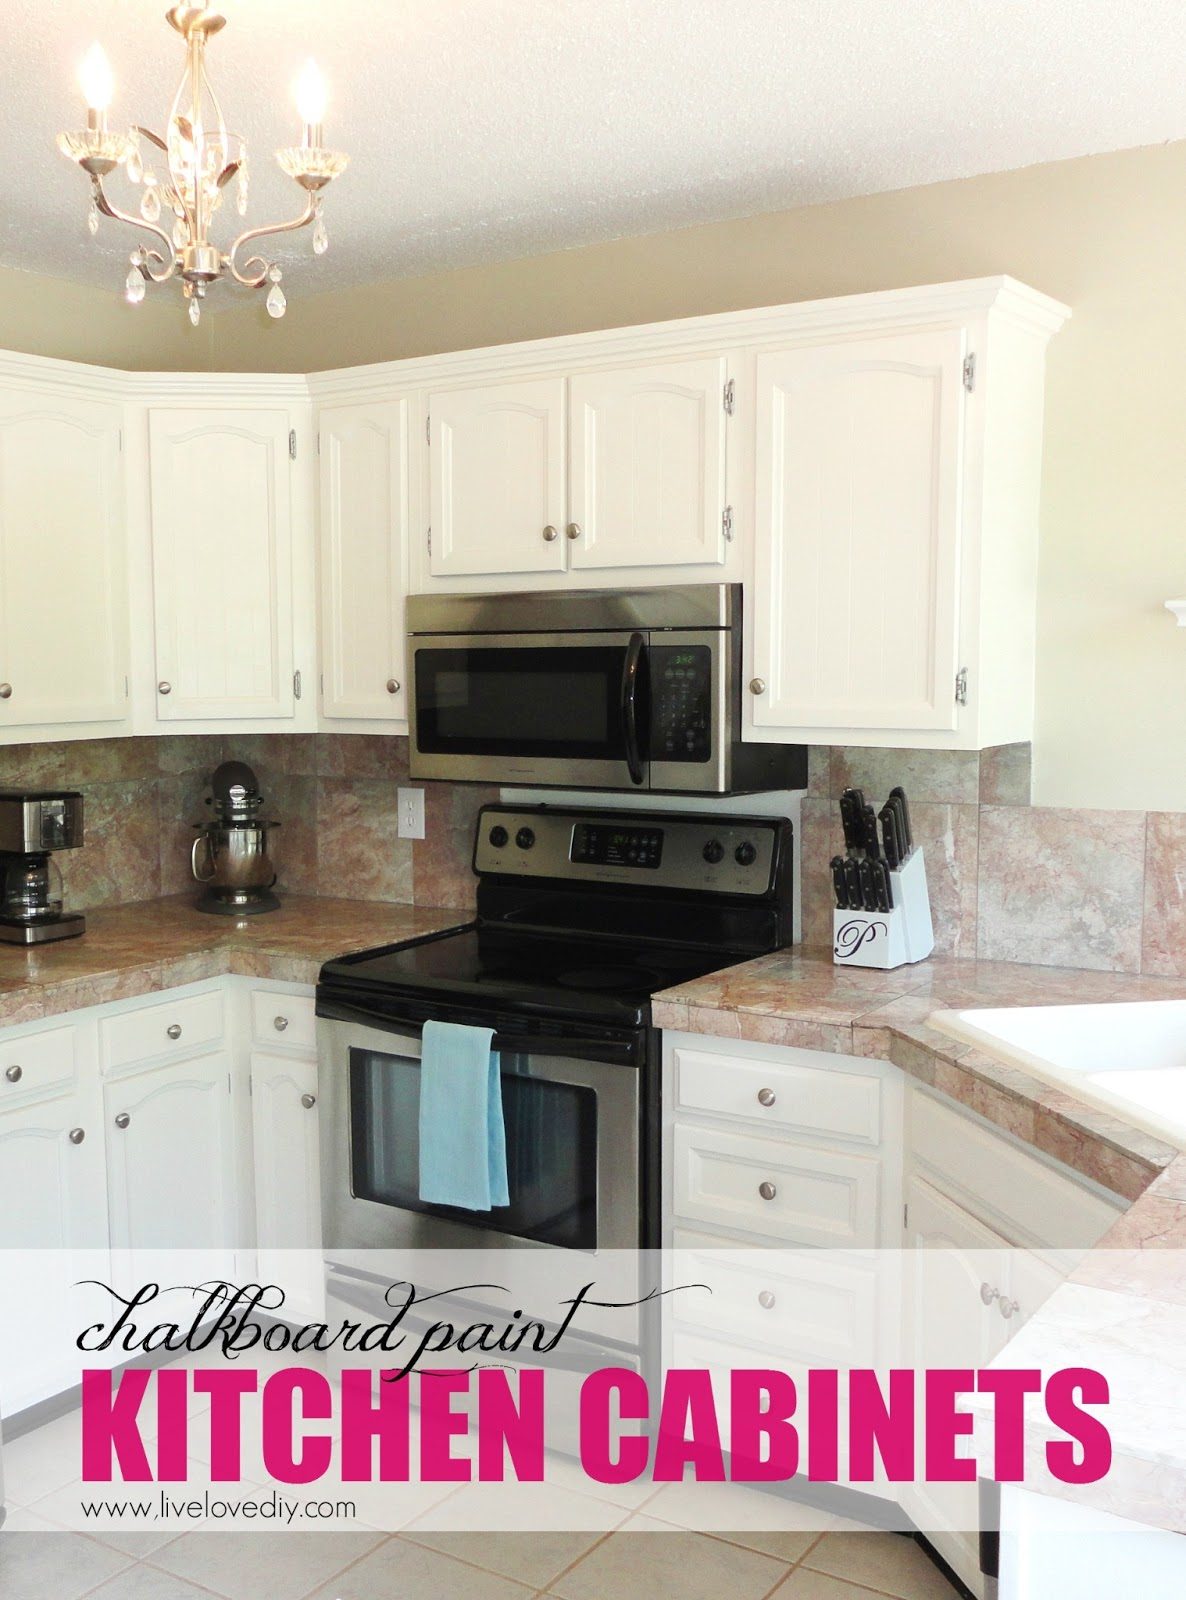 kitchen cabinet chalk paint makeover painting kitchen cabinets The Chalkboard Paint Kitchen Cabinet Makeover